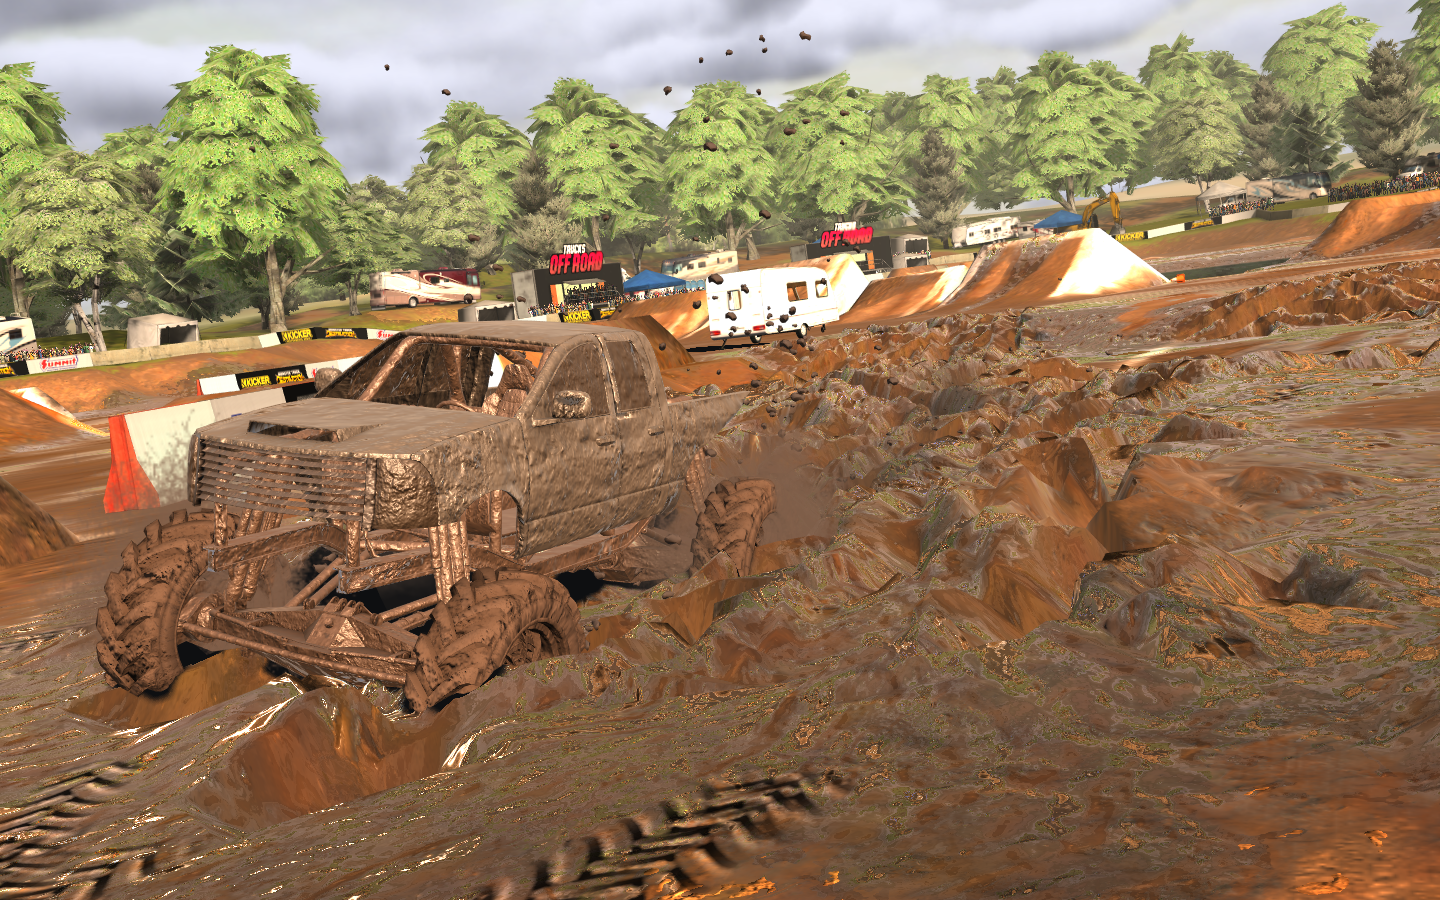 Screenshot_Mud_1440x900.png